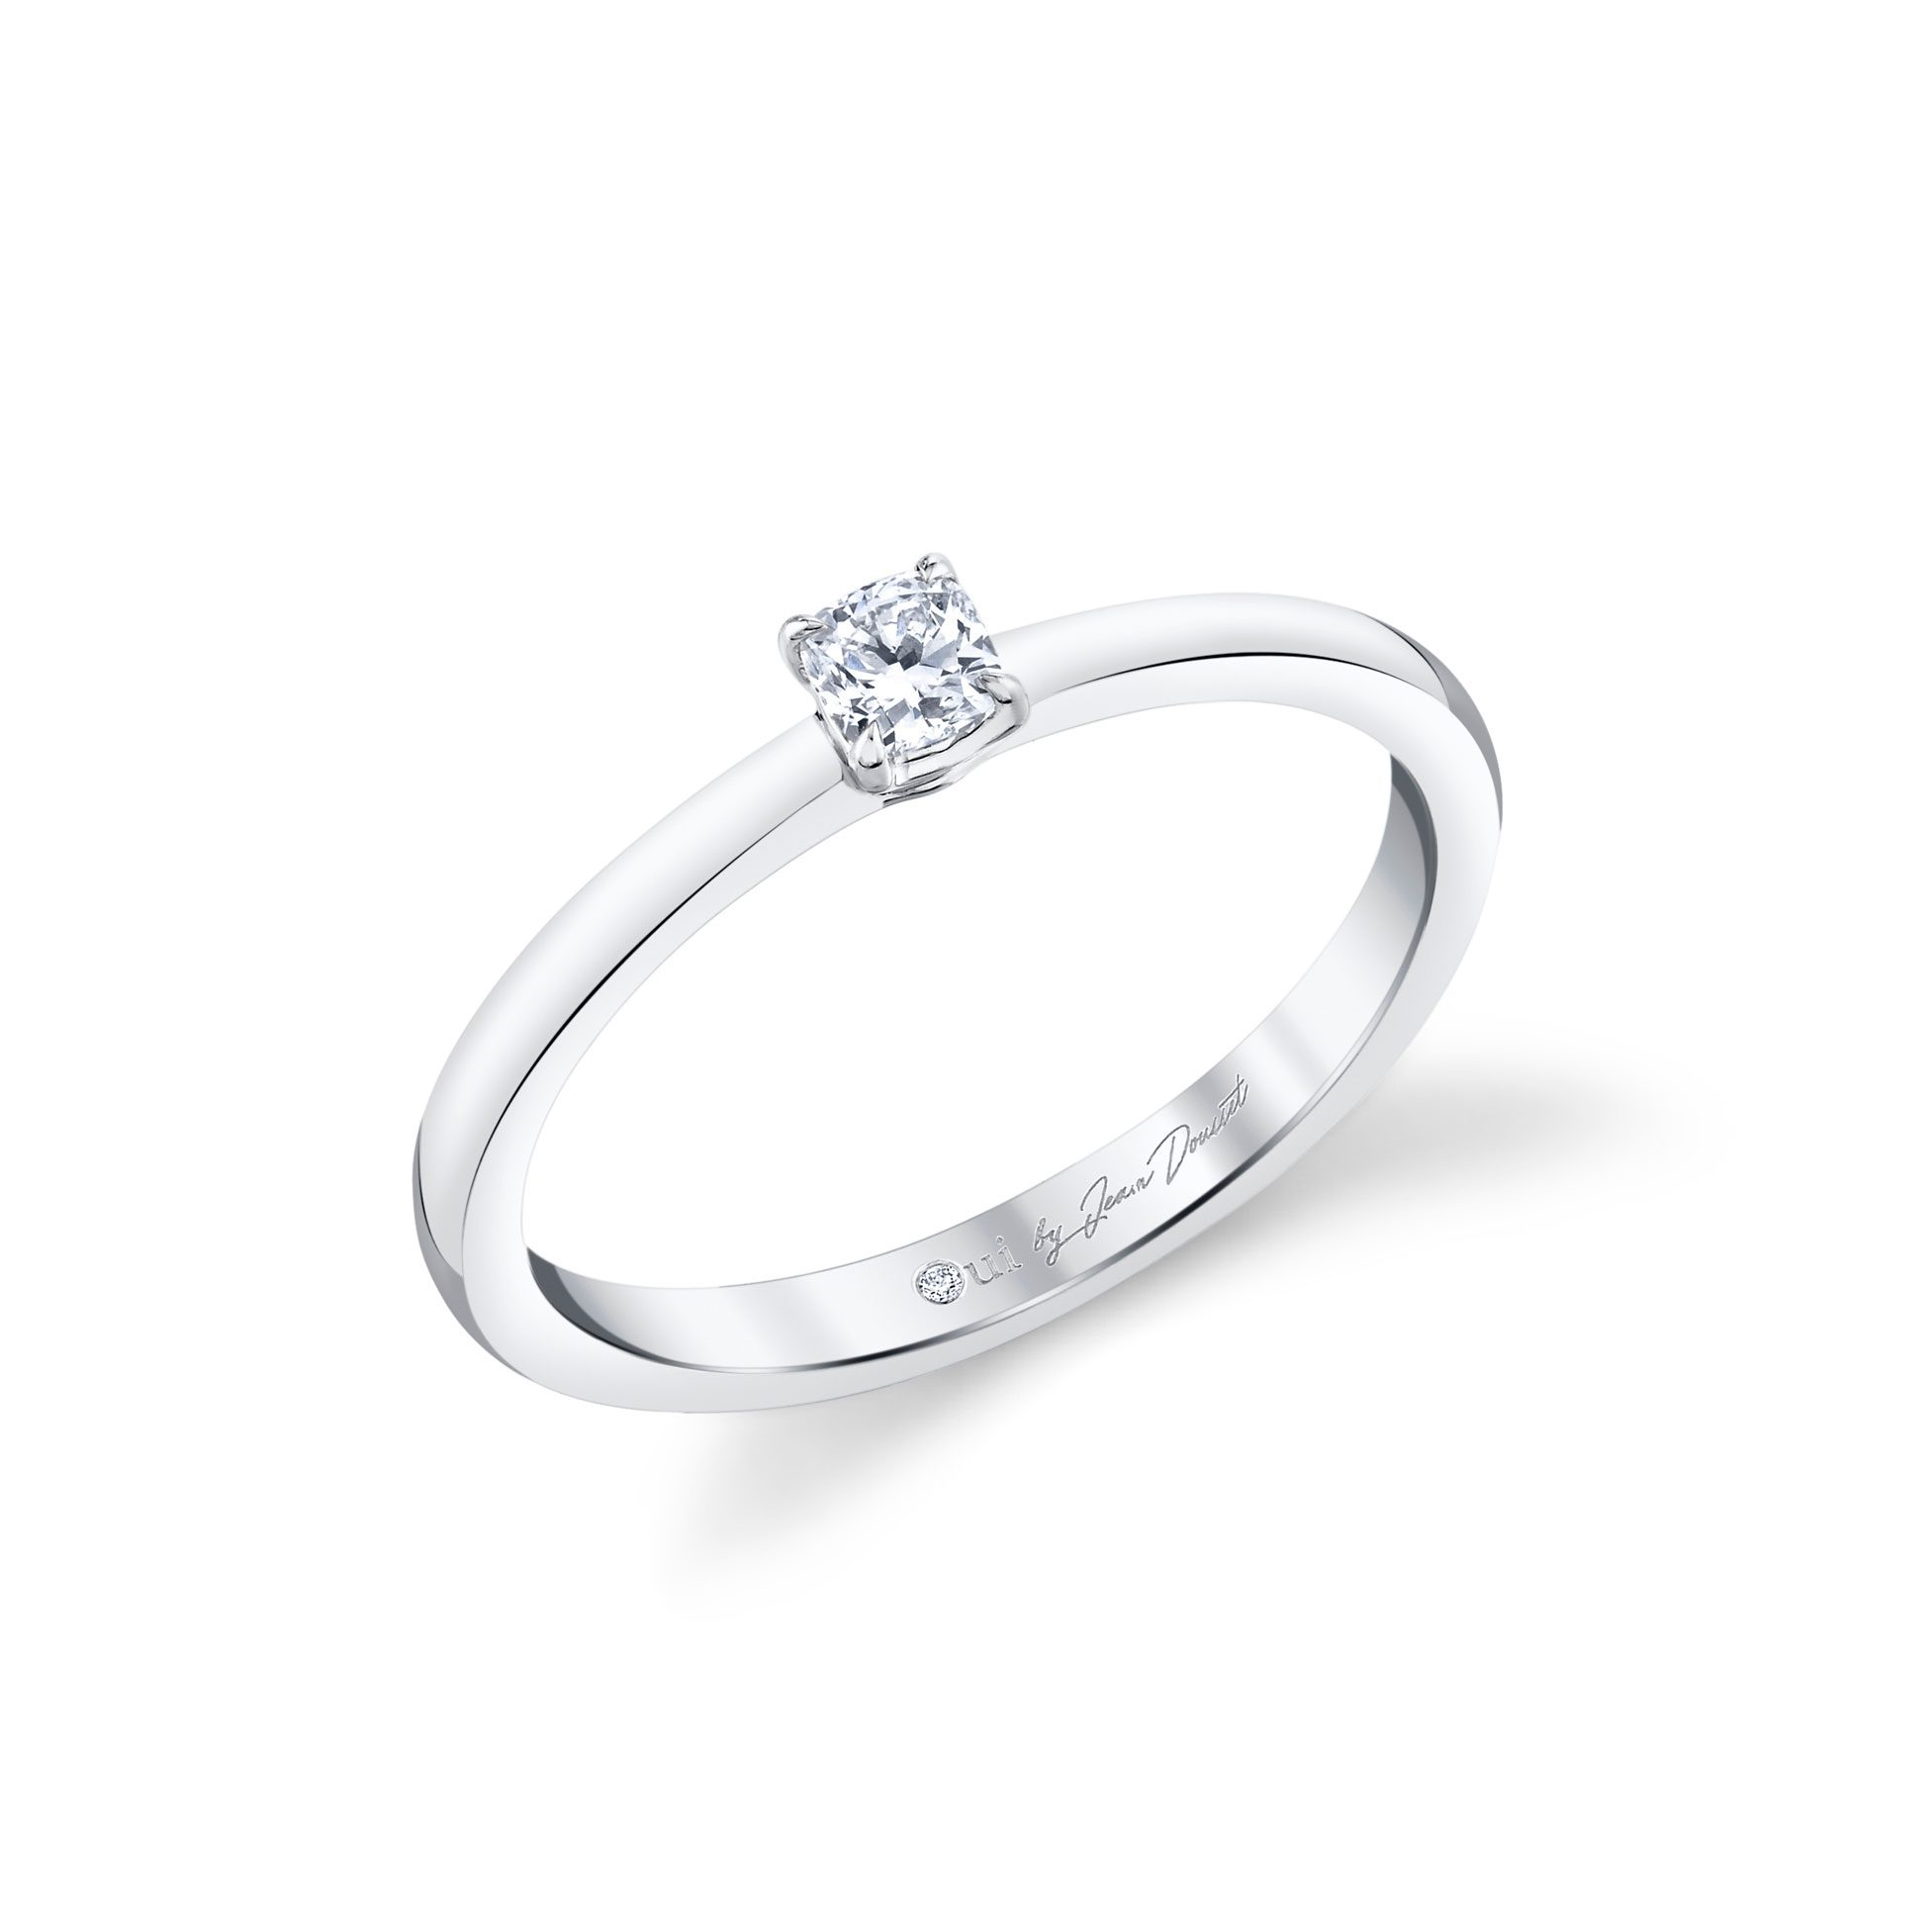 La Petite Cushion Diamond Wedding Band in 18k White Gold Standing View by Oui by Jean Dousset